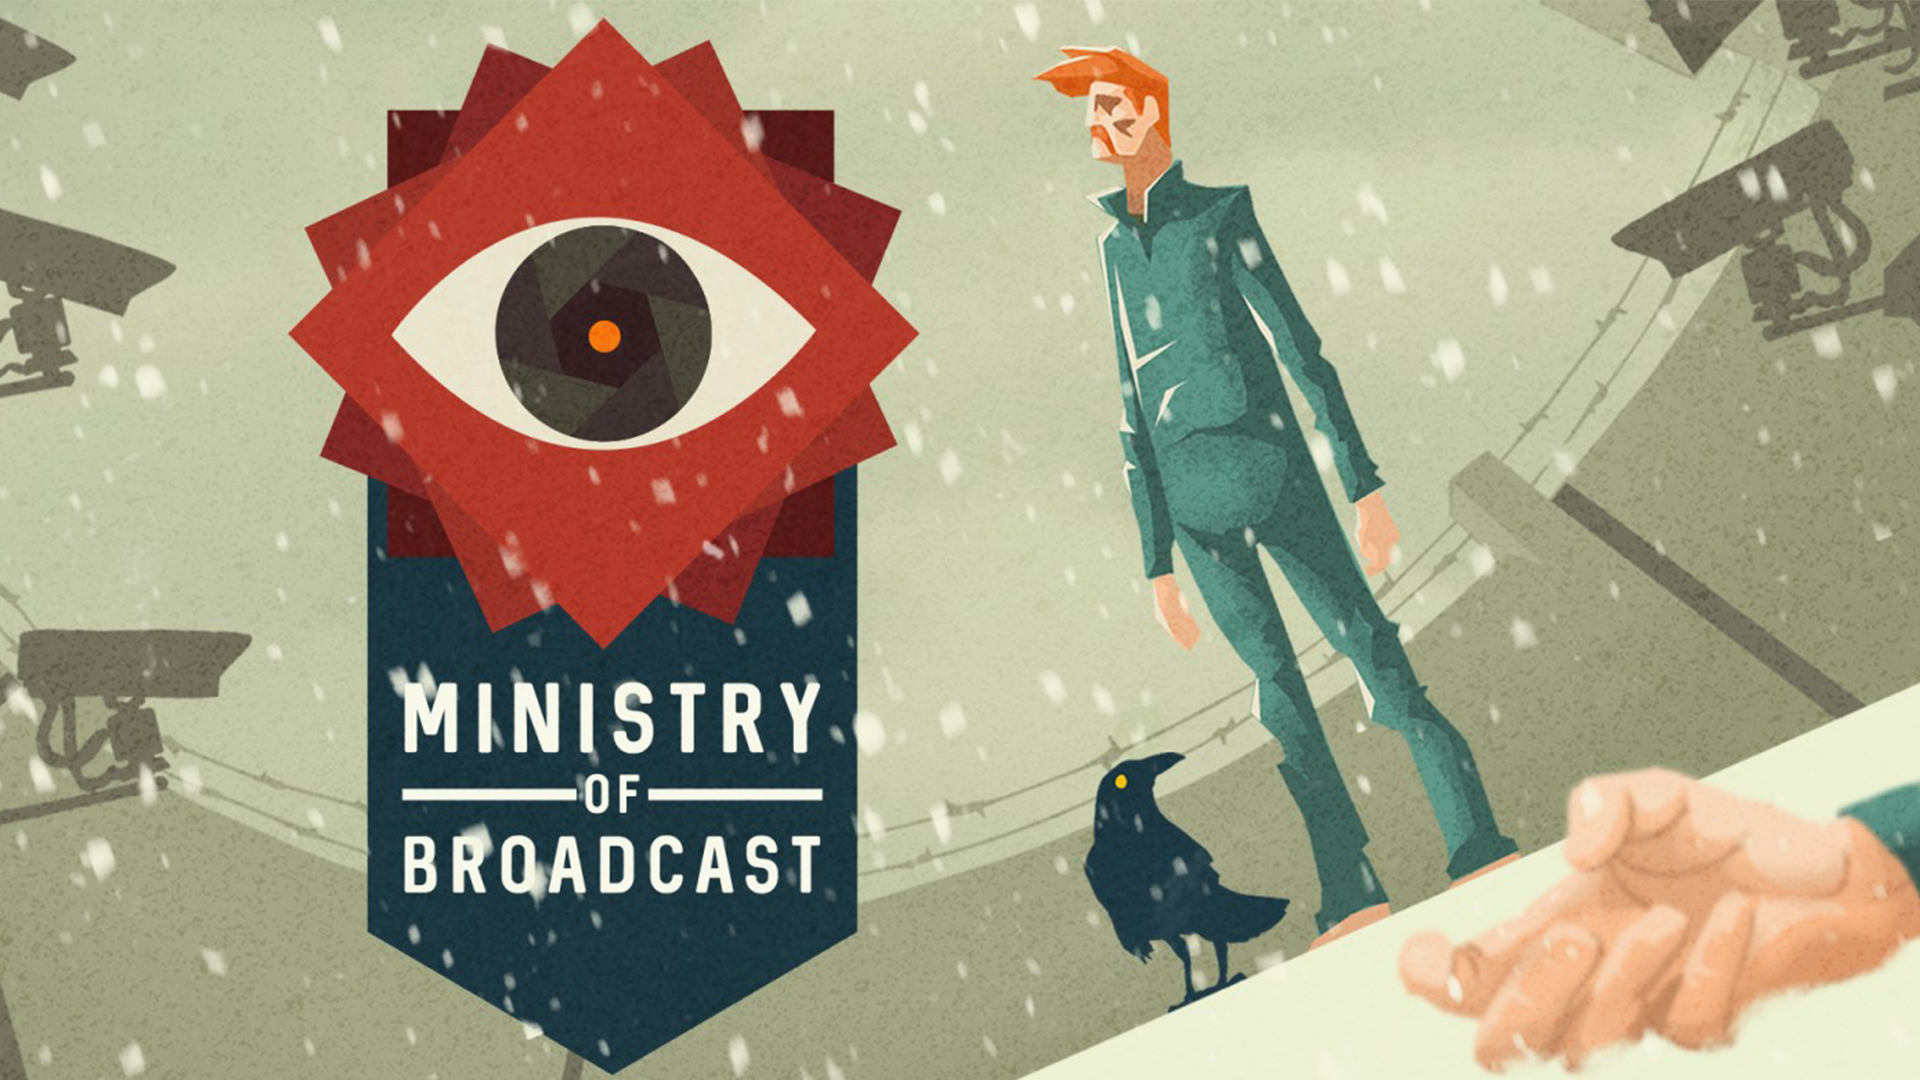 ministryofbroadcast-cover-justforgames